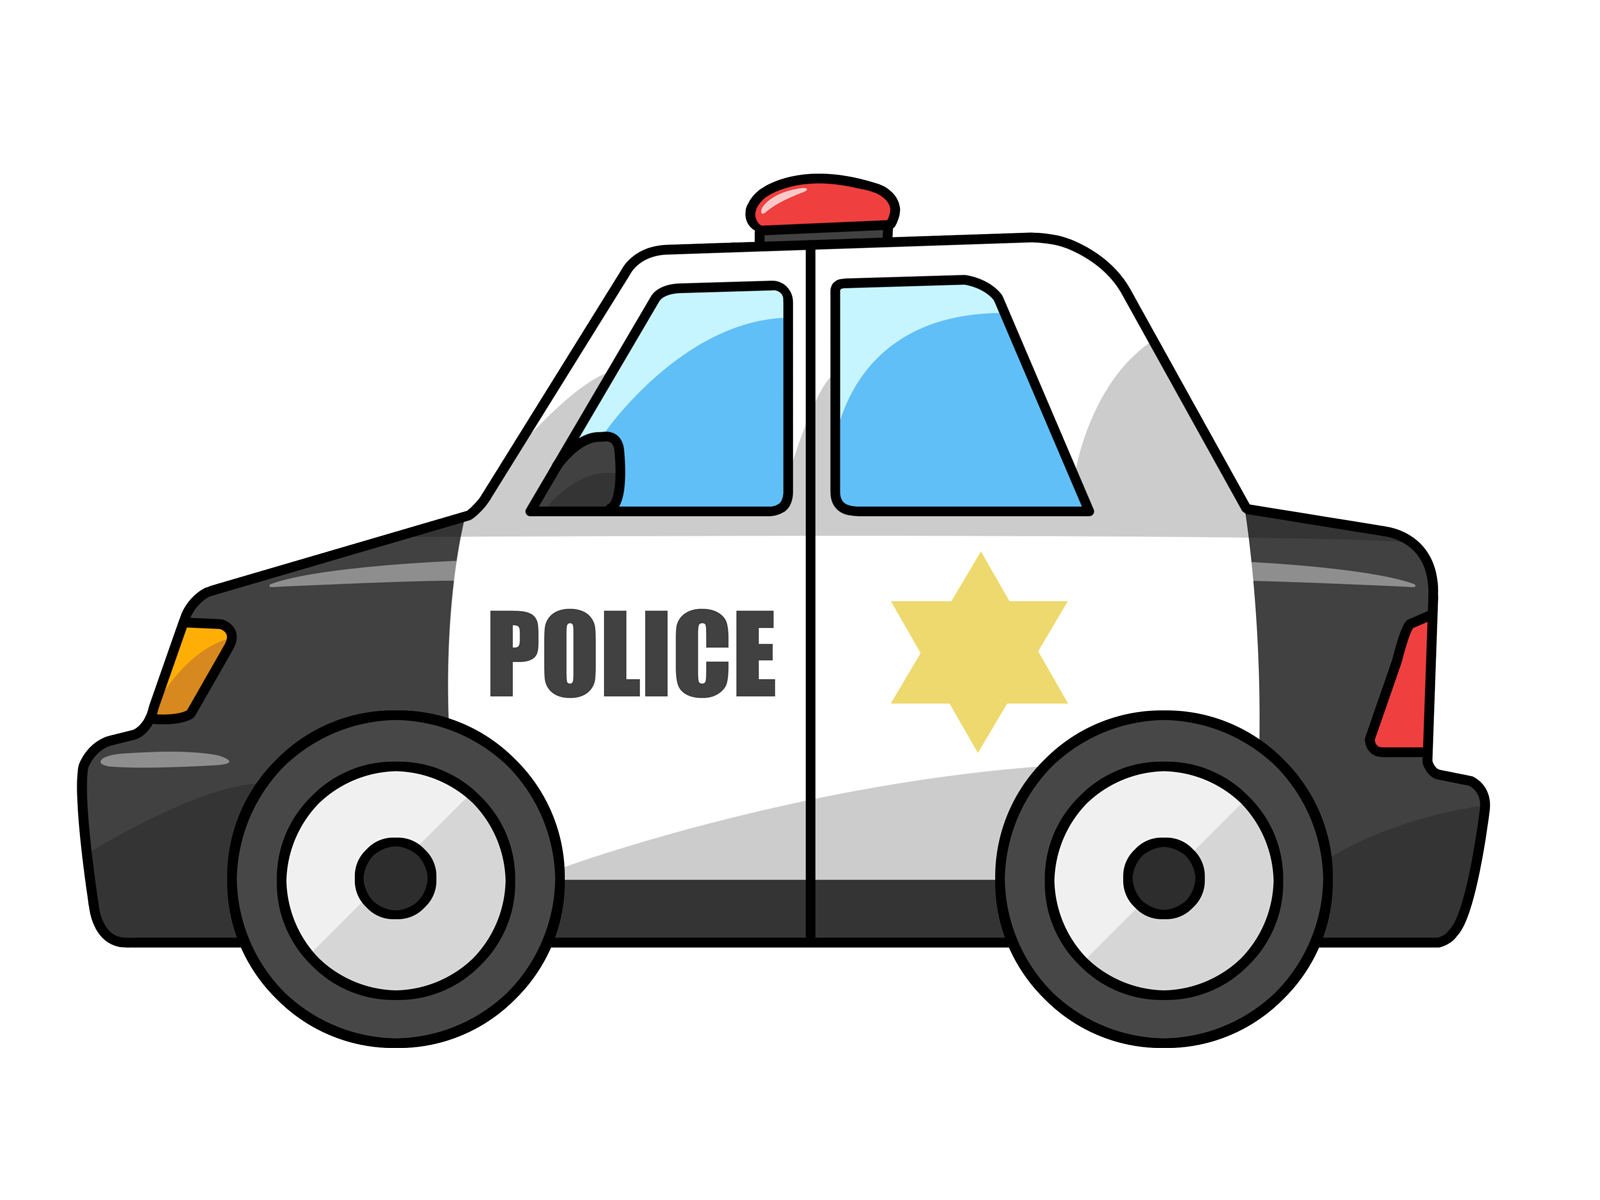 Moving car clipart vector transparent Free to Use & Public Domain Police Car Clip Art - ClipArt Best ... vector transparent